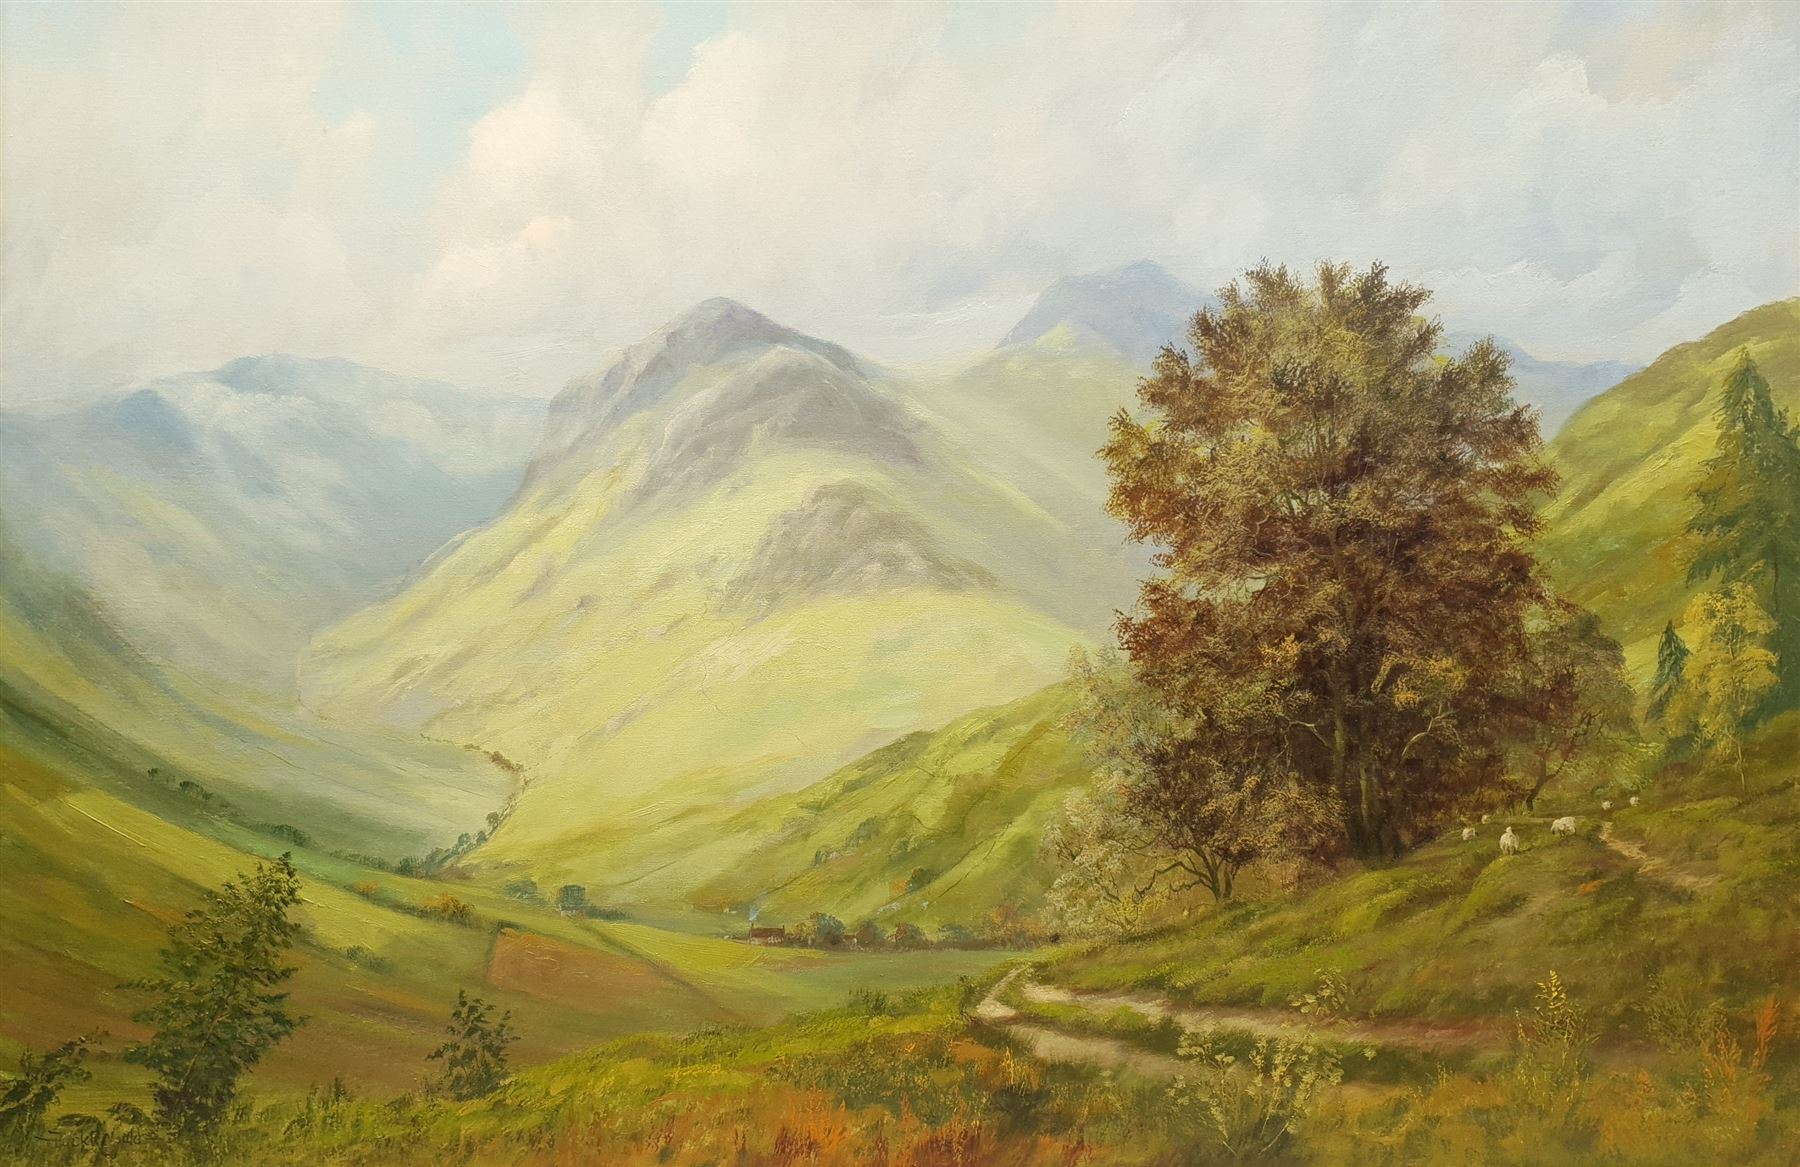 Jack R Mould (British 1925-1998): Mountain Valley